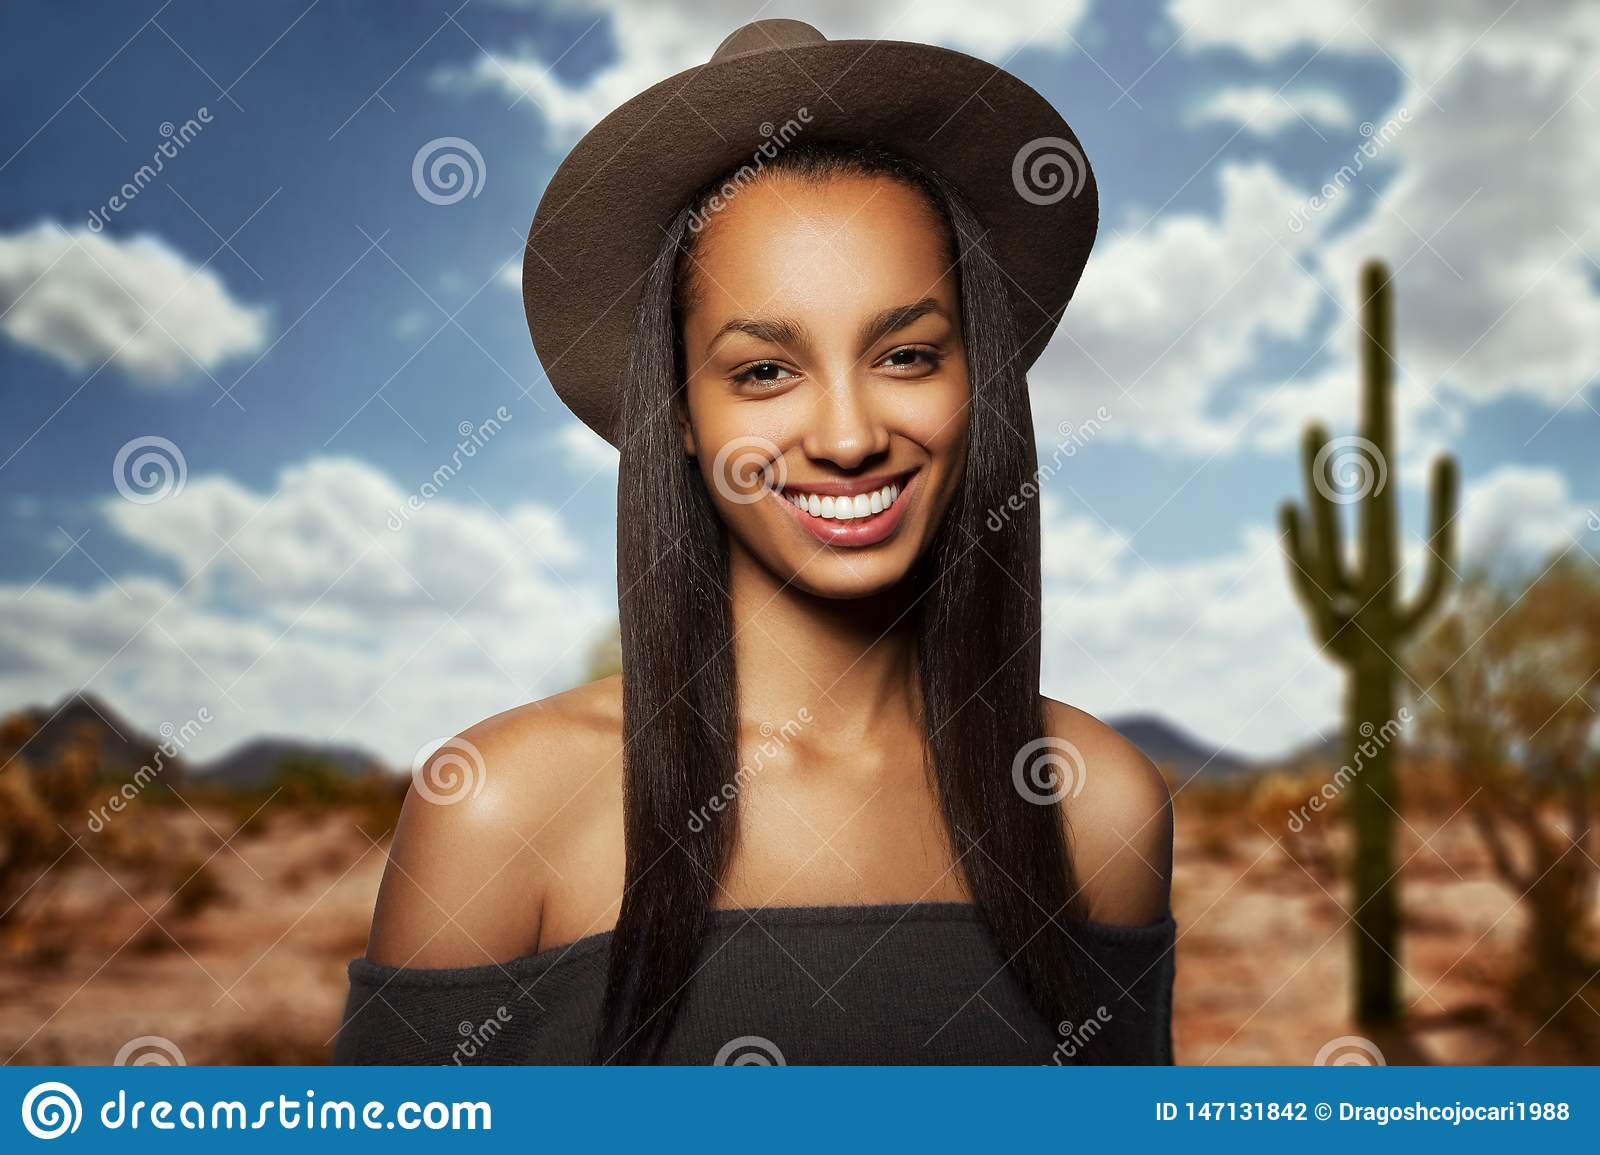 Beautiful young woman with brown hat, long hair, smiling, with naked shoulders, isolated on a blurry desert background.